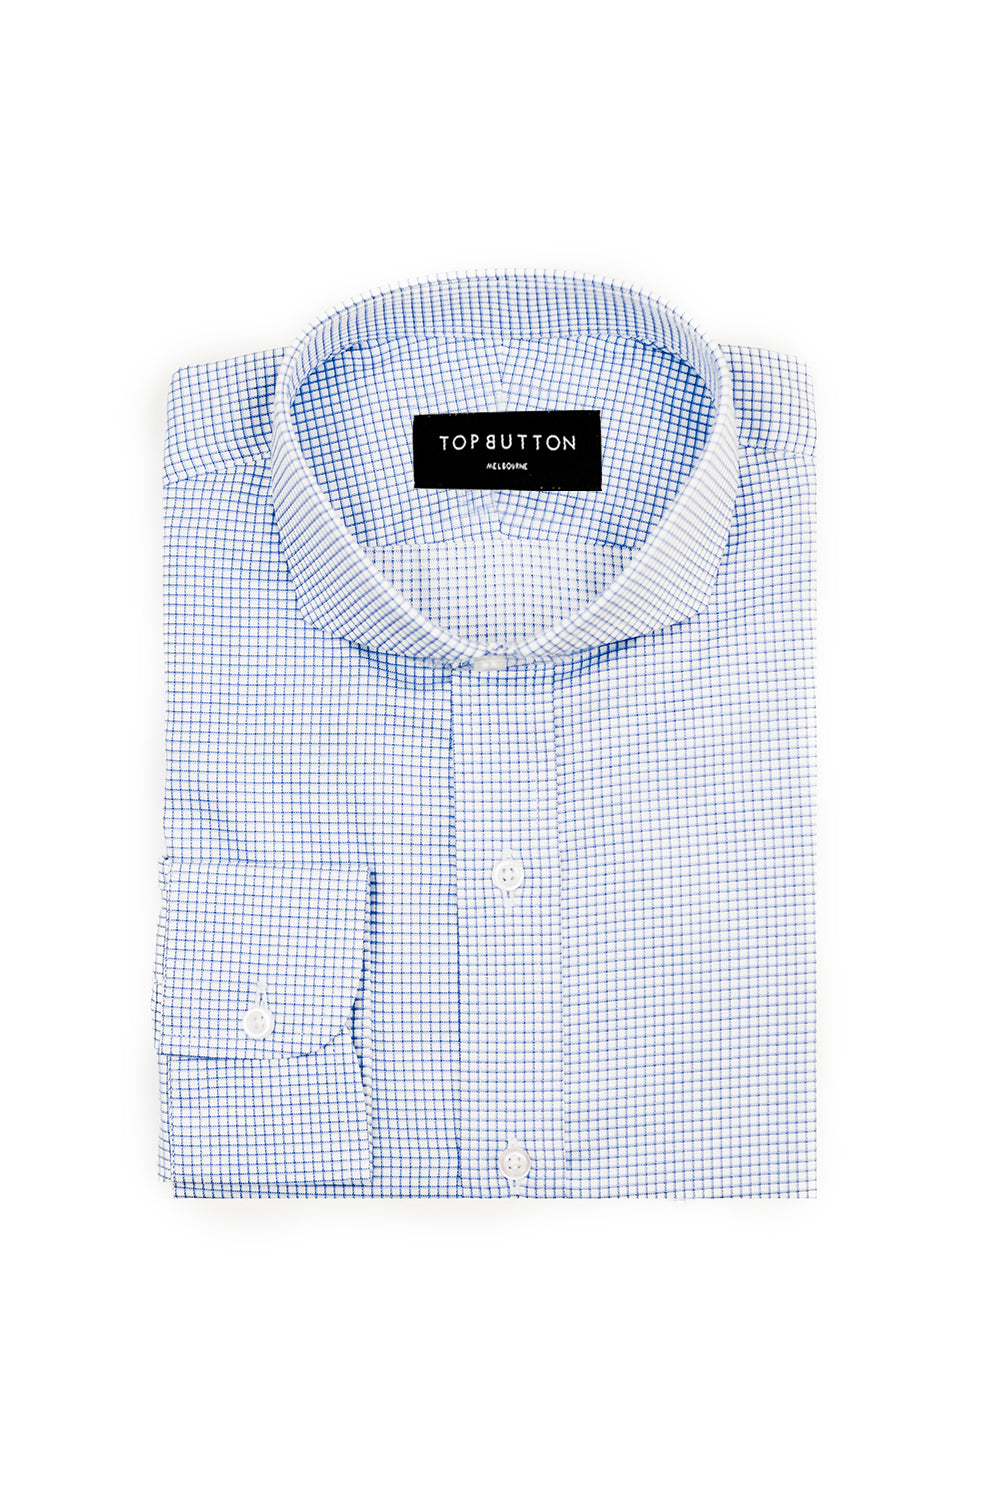 Mini Window – Blue - Top Button Custom Shirts Melbourne